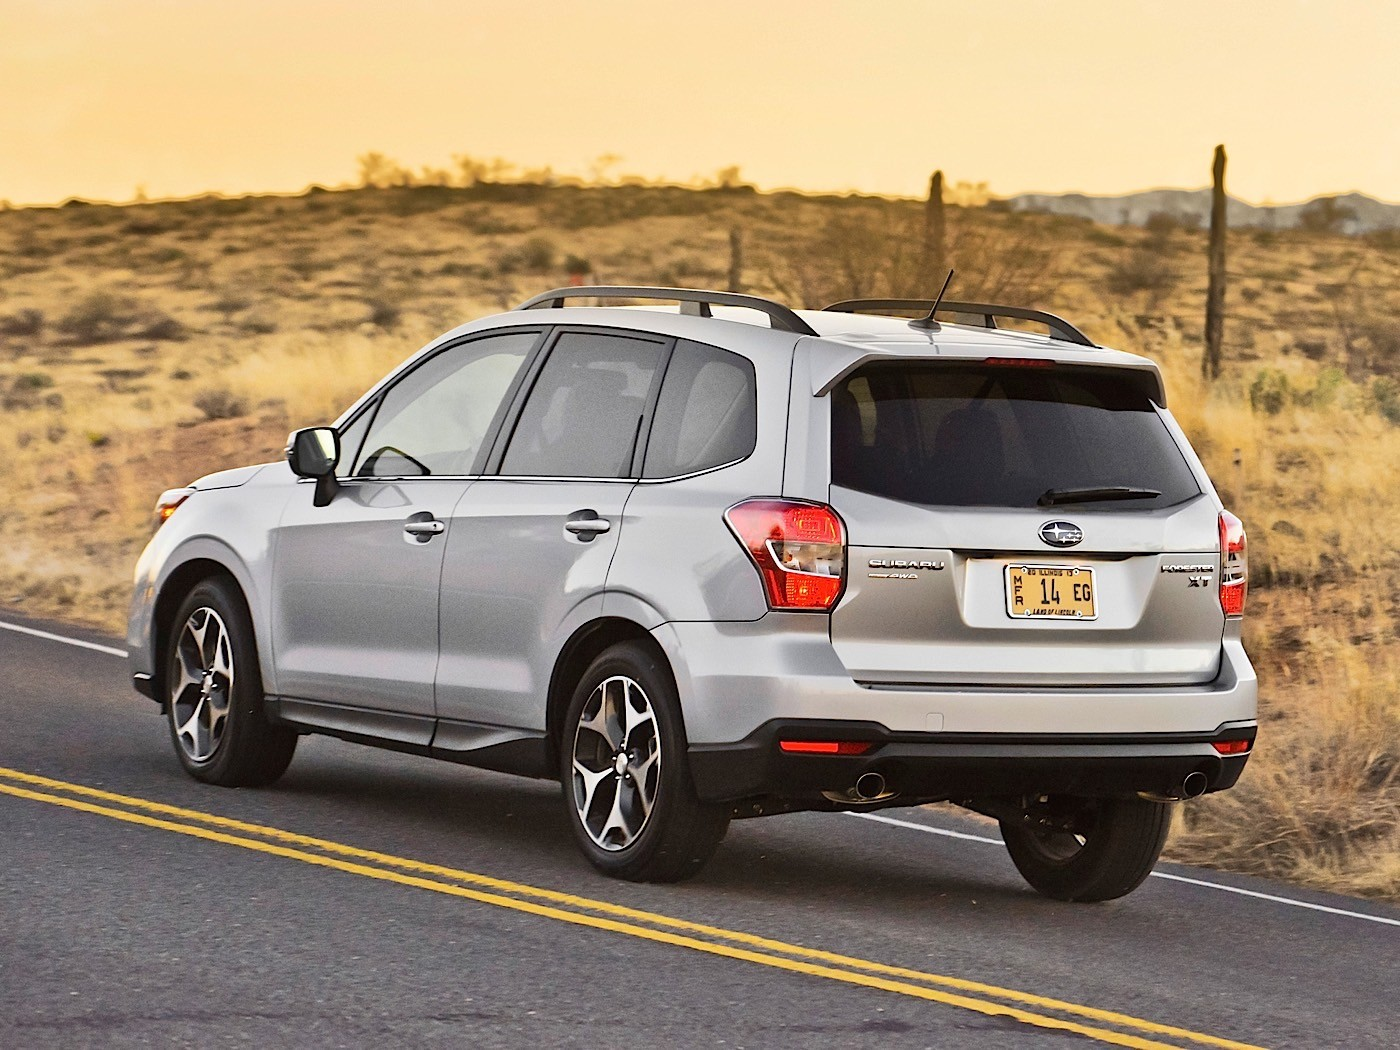 Iihs Safety Ratings >> Top 10 Safest SUVs on the US Market in 2016 - autoevolution